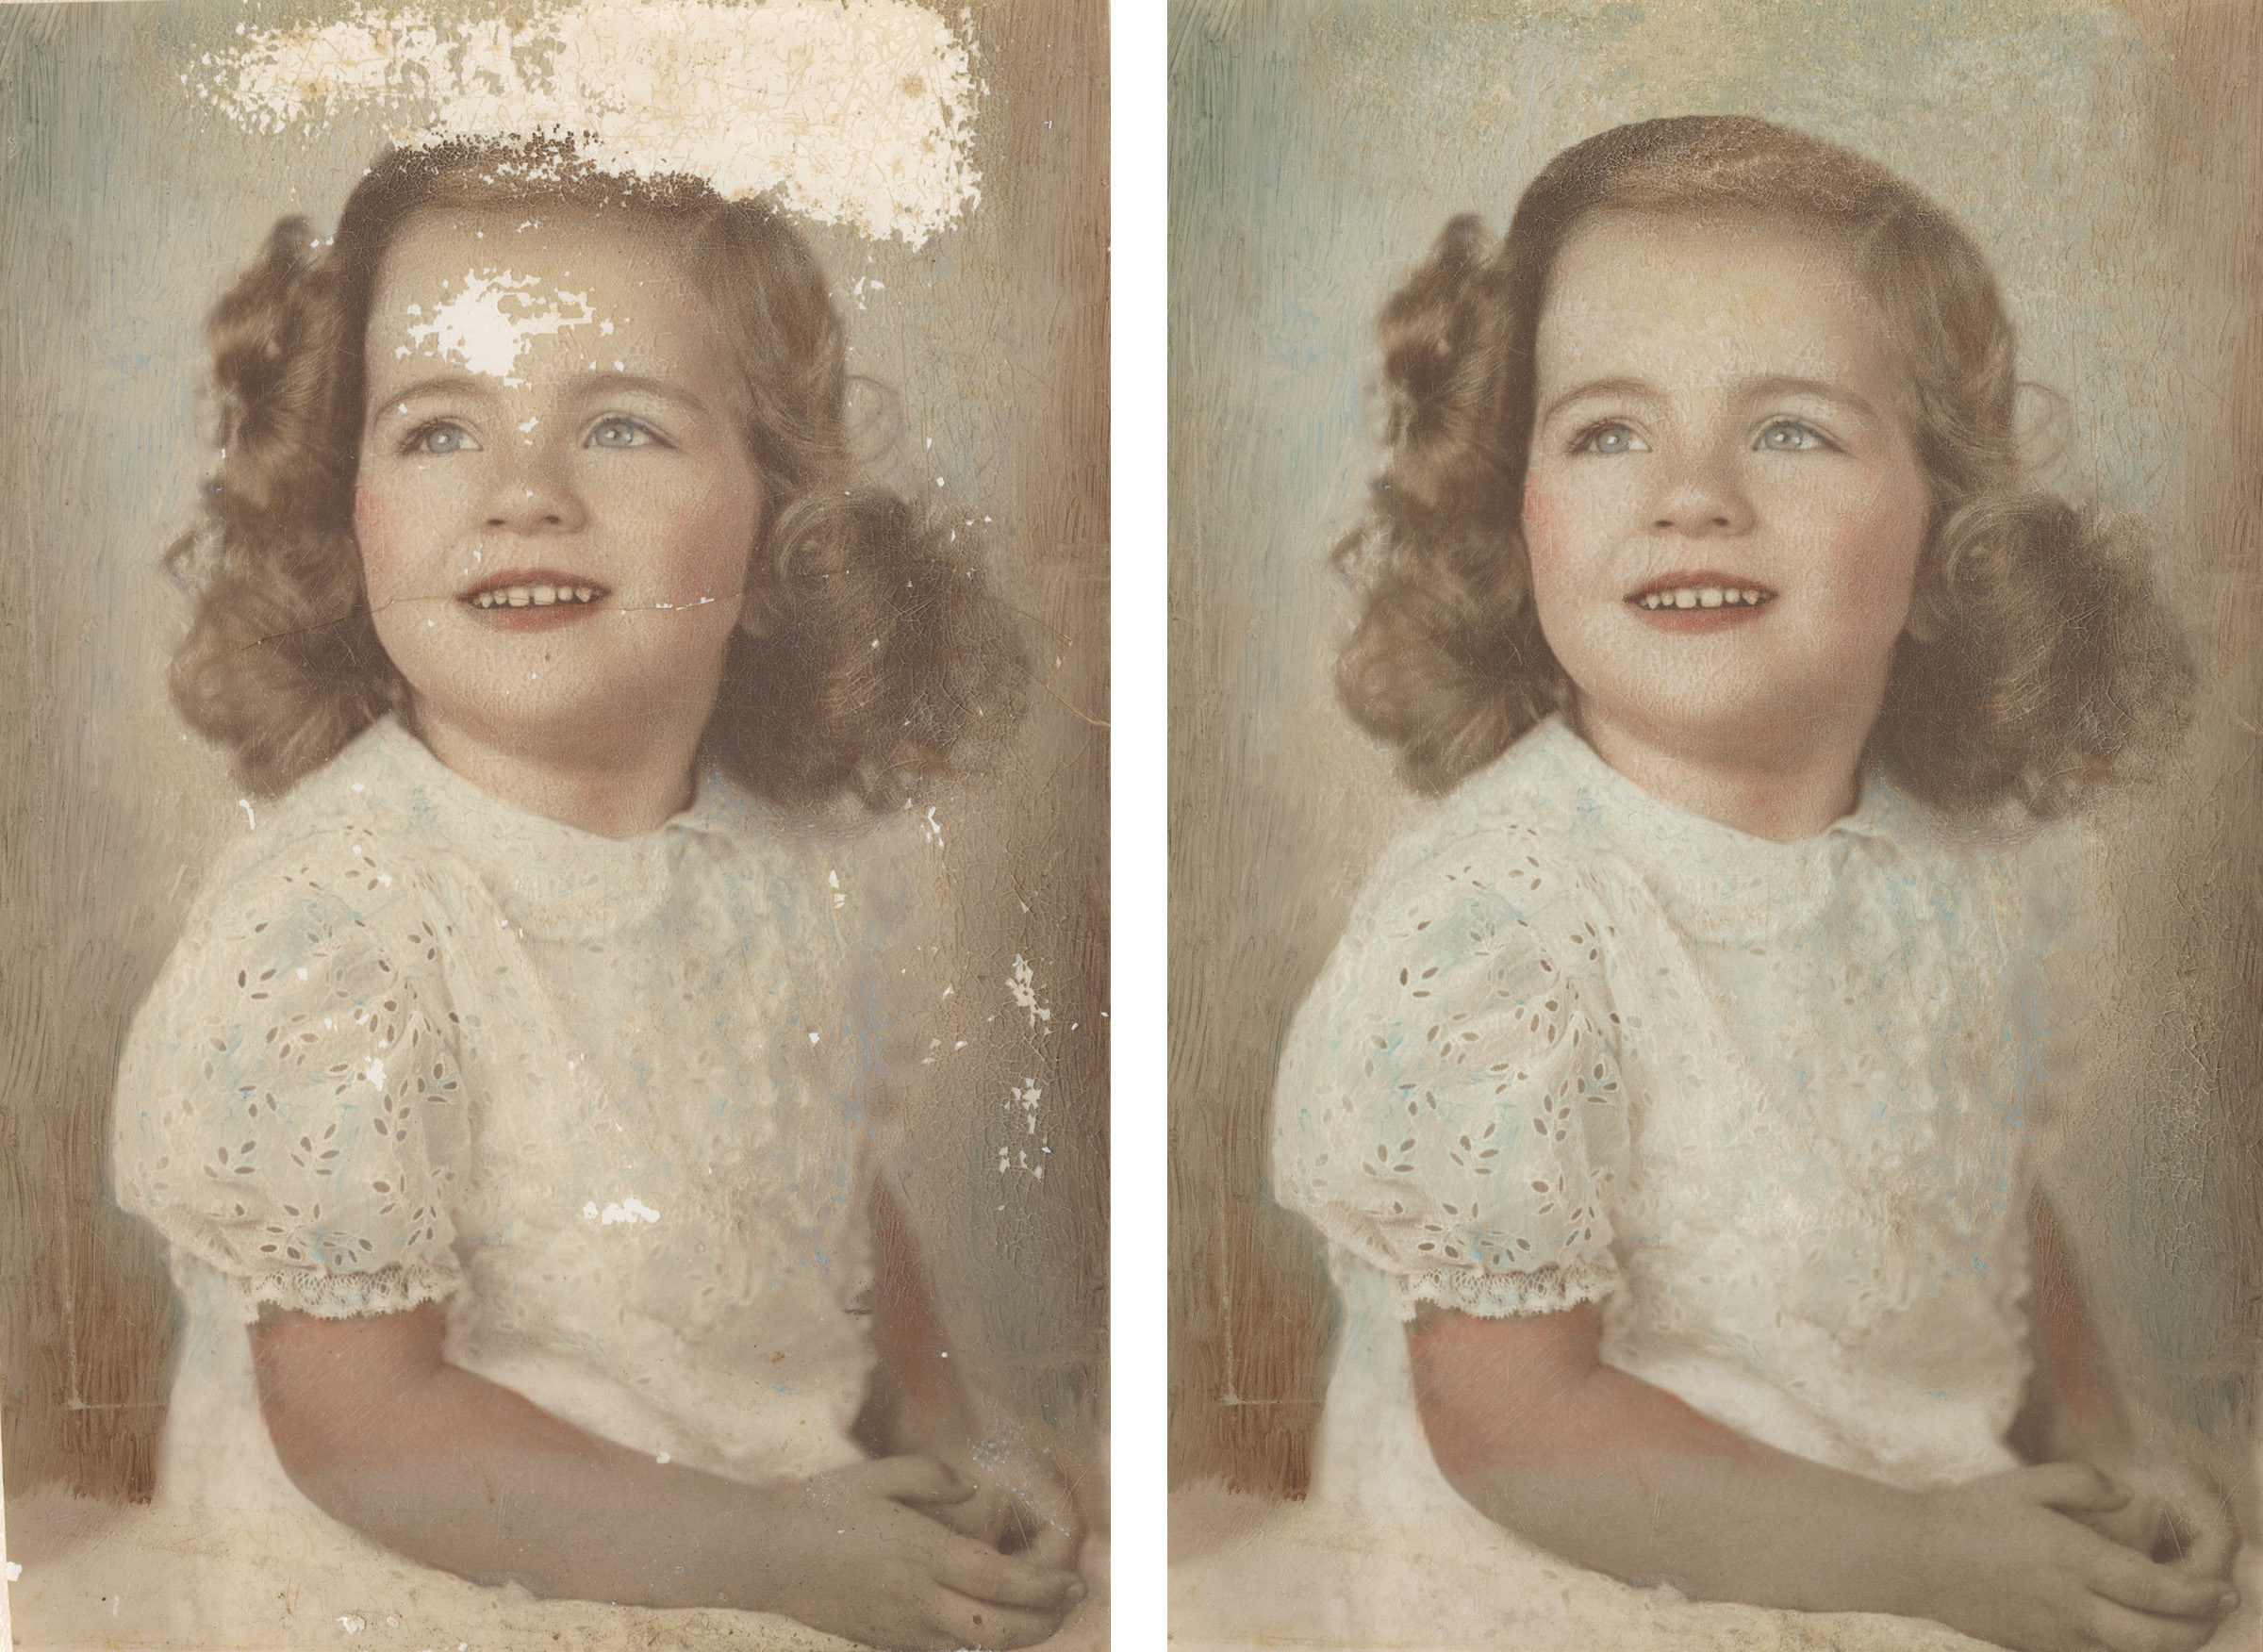 Turn A New Photo Into An Old Photo With Photoshop